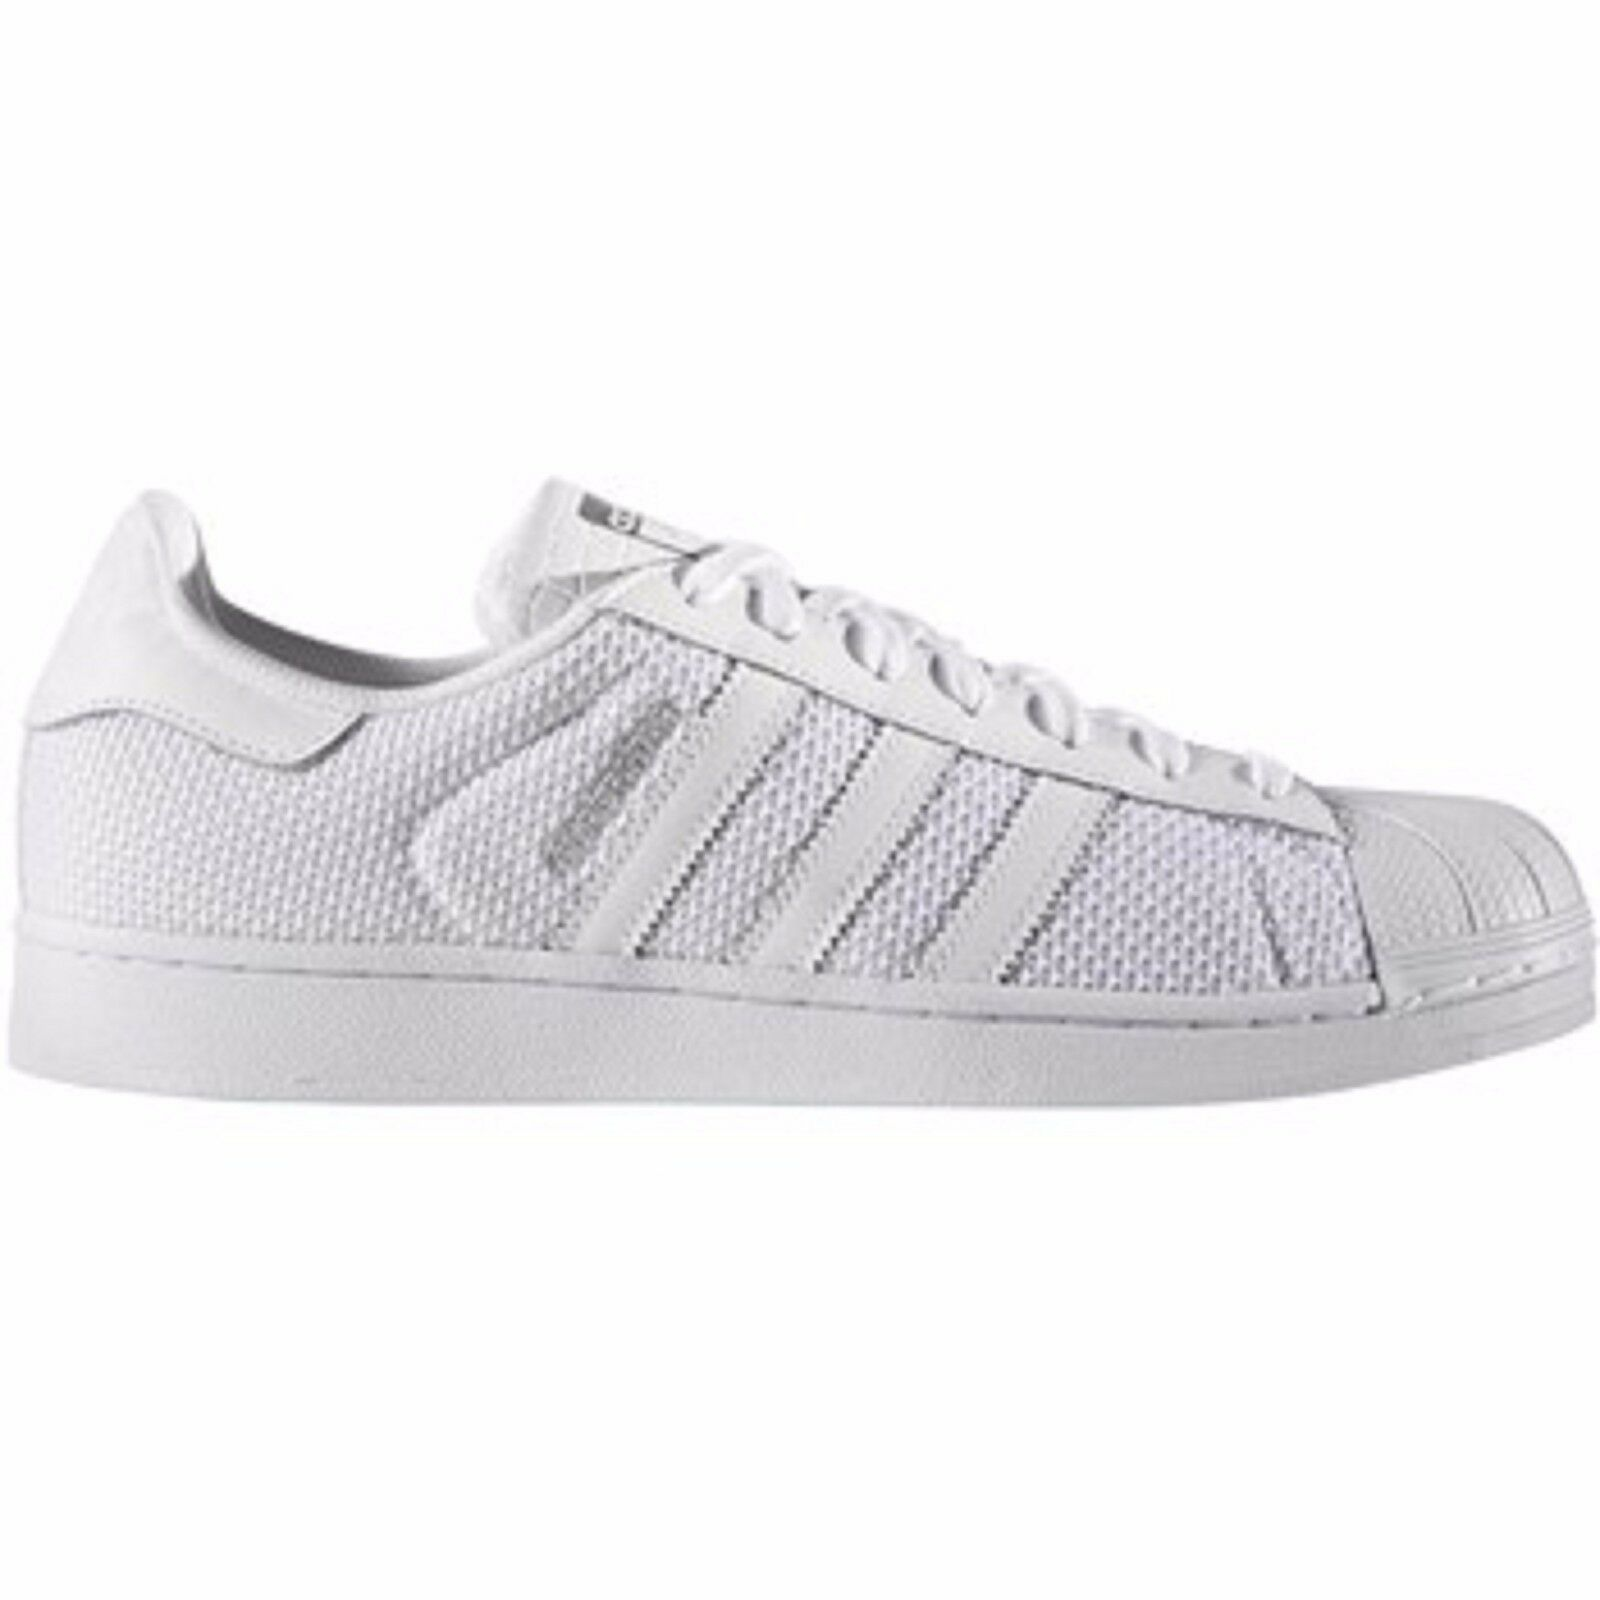 b90829b53798 hot sale 2017  S75962  Mens Adidas Originals Superstar Breathable Knit  Triple White  NEW